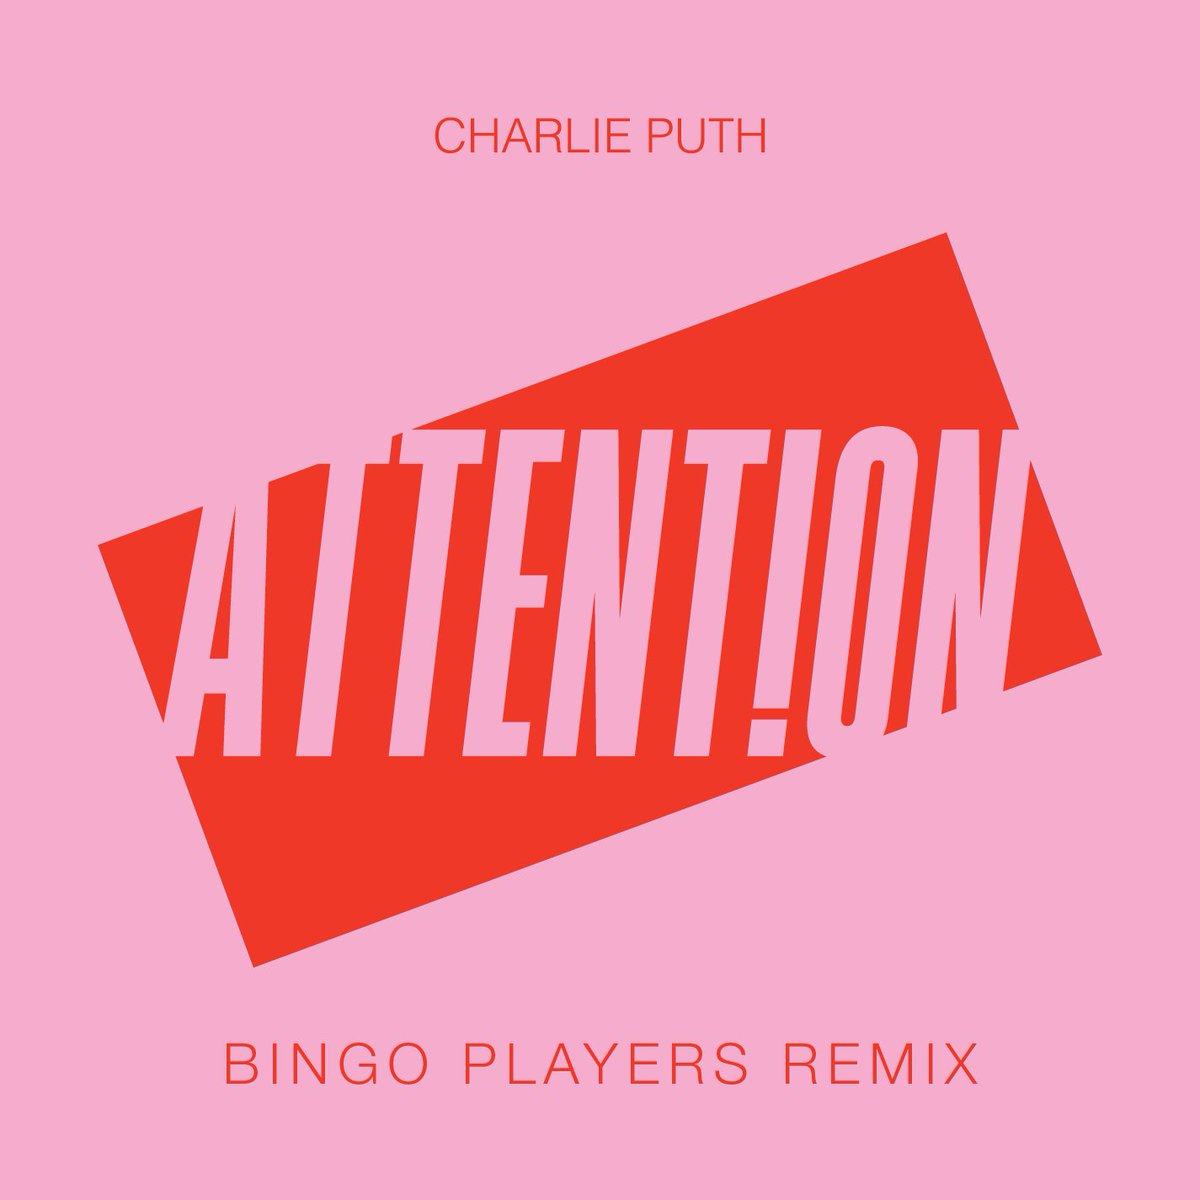 The @bingoplayers remix of #Attention is out now - https://t.co/fyCwRk...